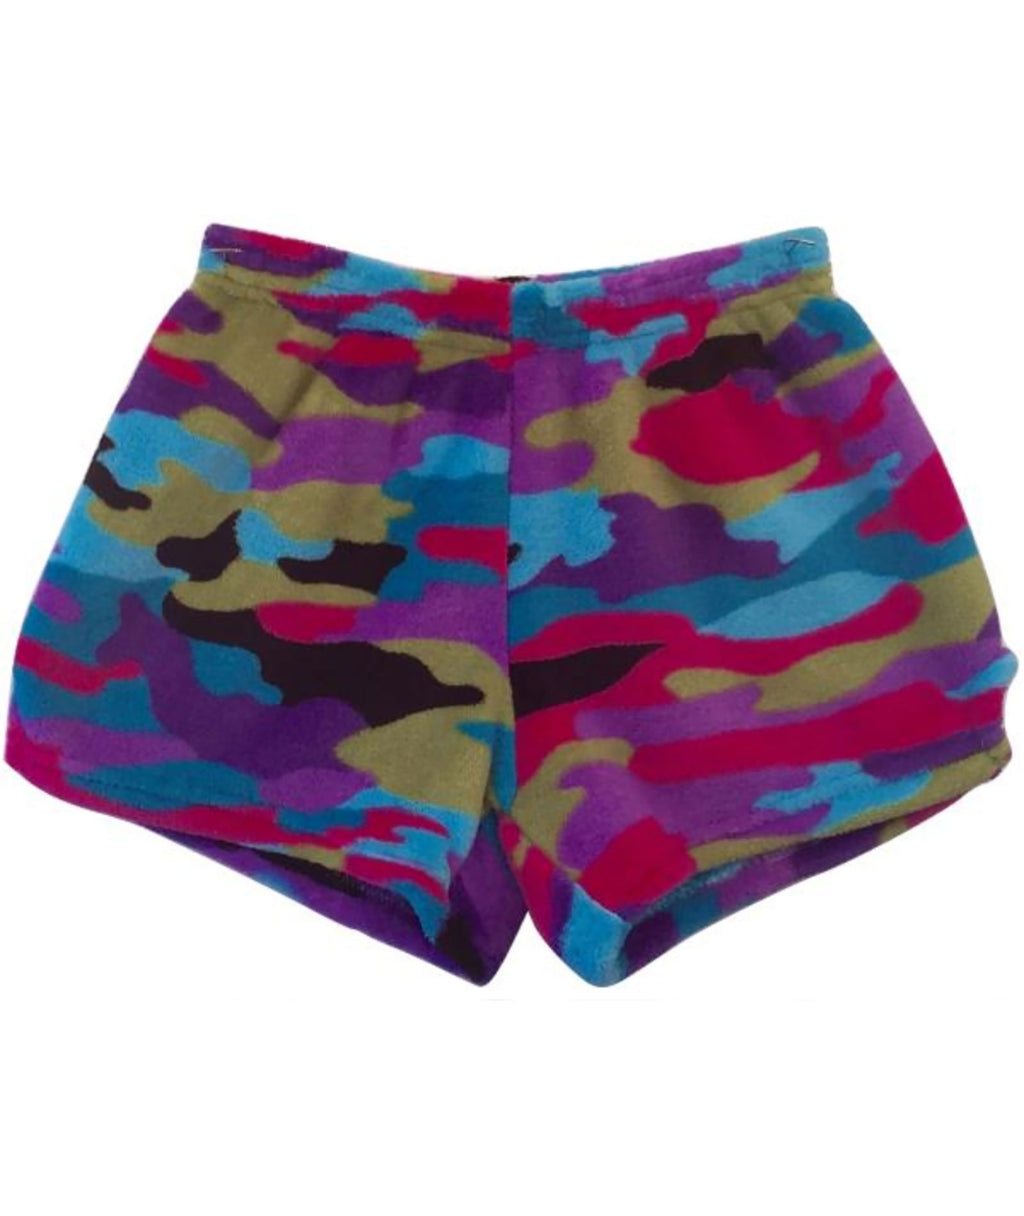 Made with Love and Kisses Girls Funky Camo Shorts